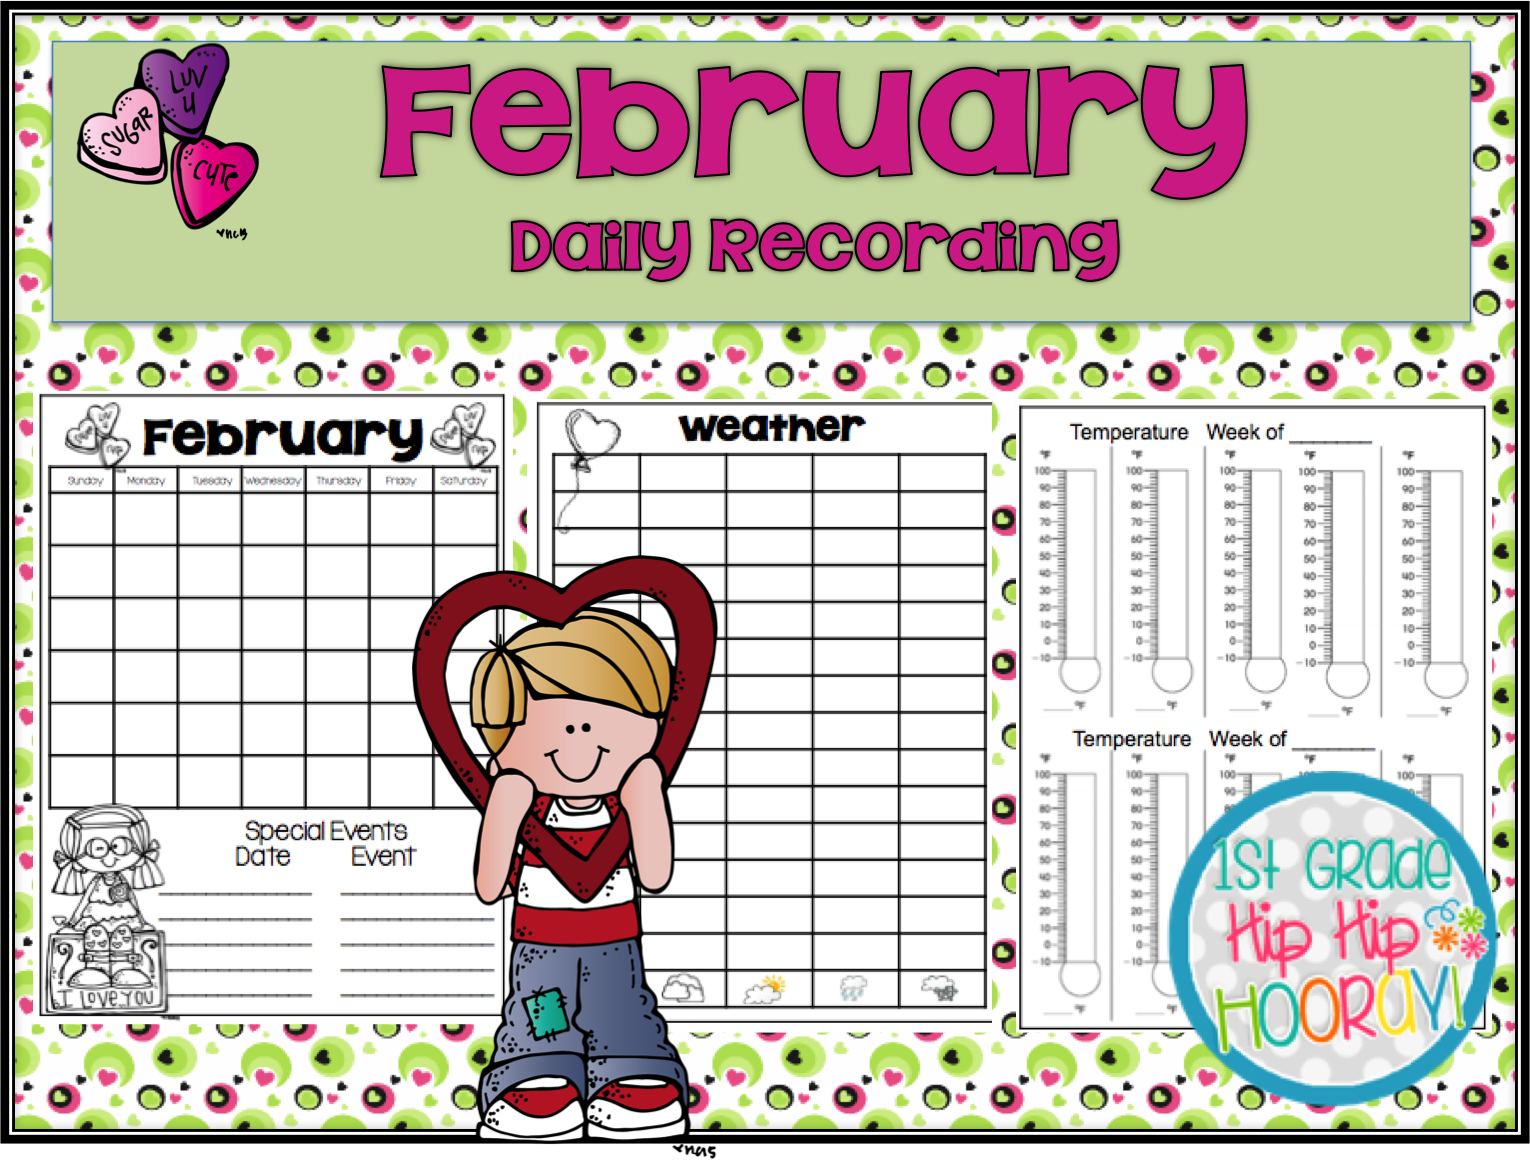 1st Grade Hip Hip Hooray February Daily Calendar Weather